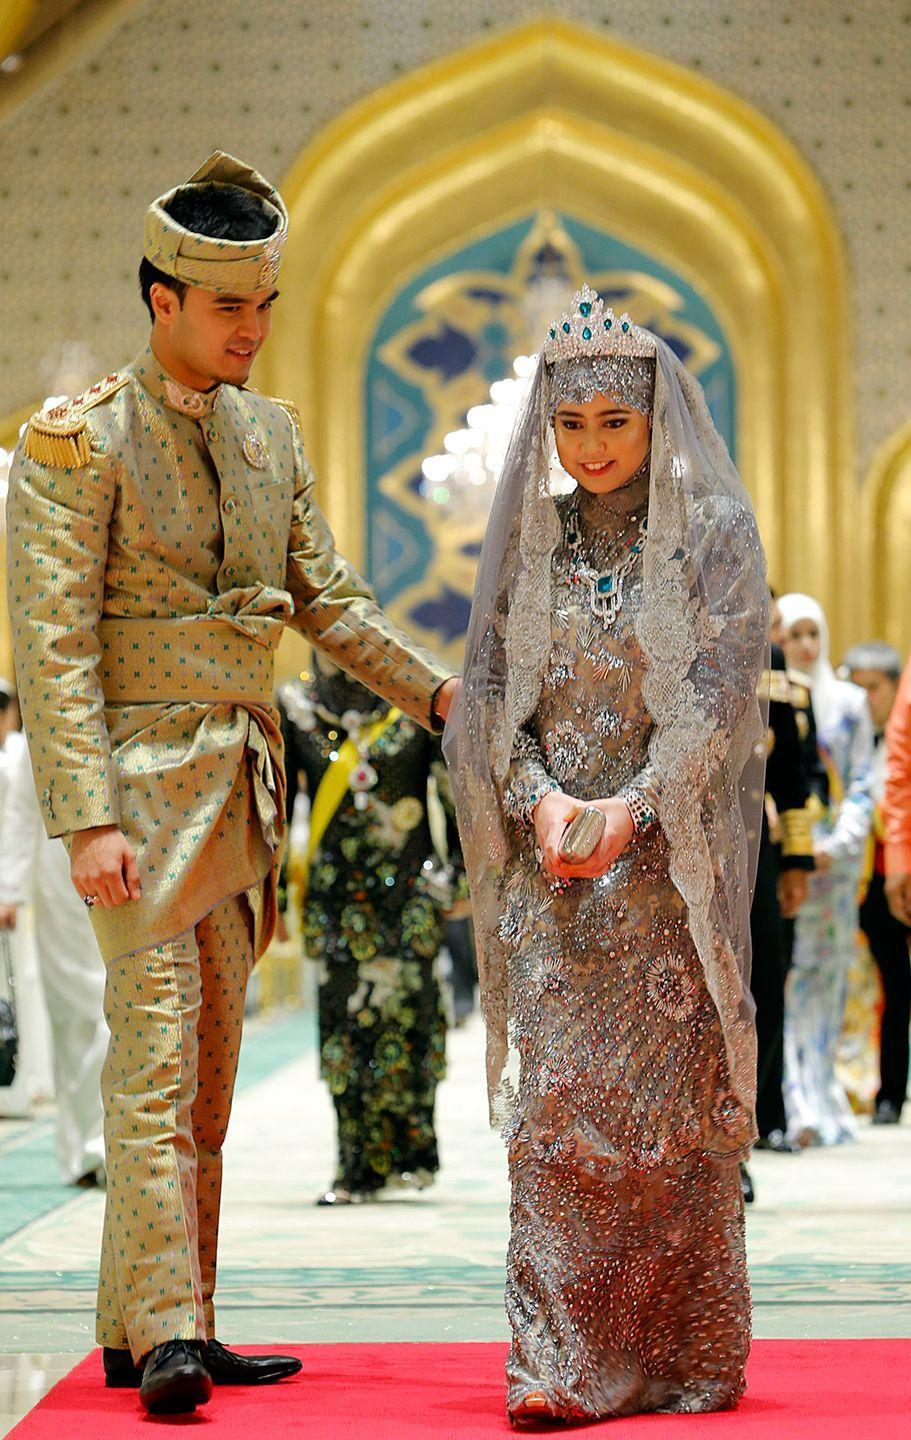 <p>Princess Hajah Hafizah Sururul Bolkiah married Pengiran Haji Muhammad Ruzaini at the sultan's palace in Brunei on September 23, 2012. For her wedding banquet, Princess Majeedah Bolkiah wore a a crystal-beaded silver gown accessoriezed with emeralds and a tiara veil.</p>